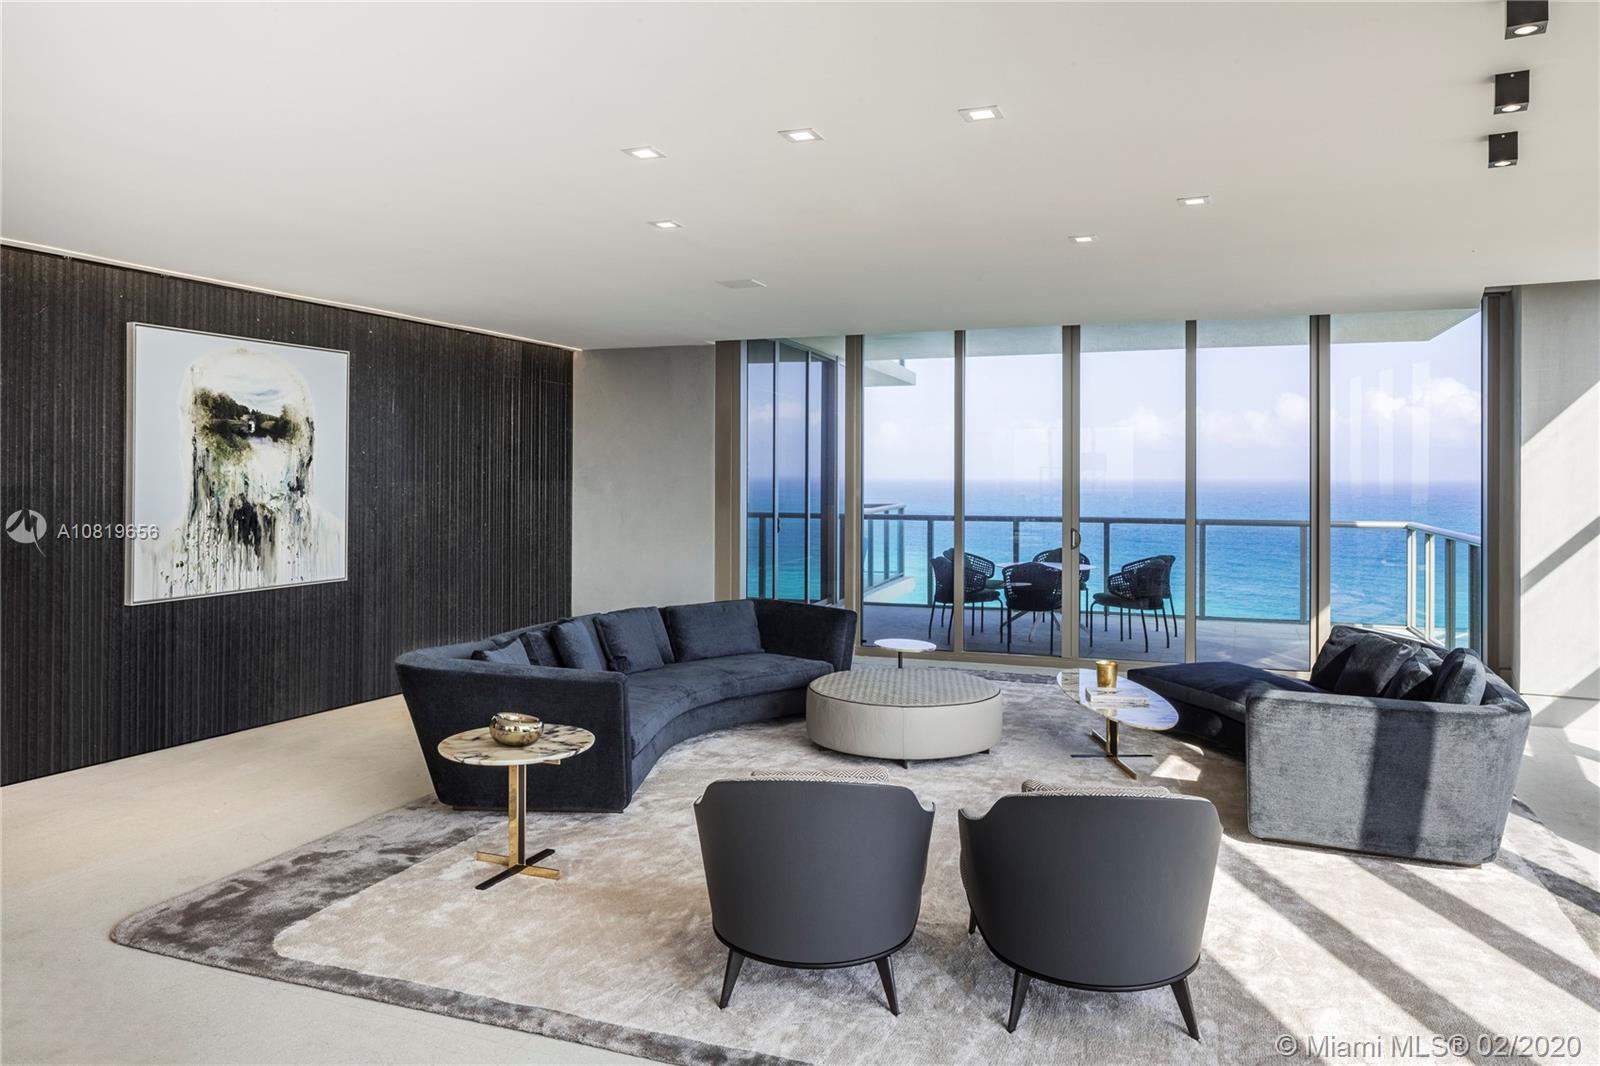 This bespoke residence at the St. Regis Bal Harbour has been custom-designed for the discerning buye